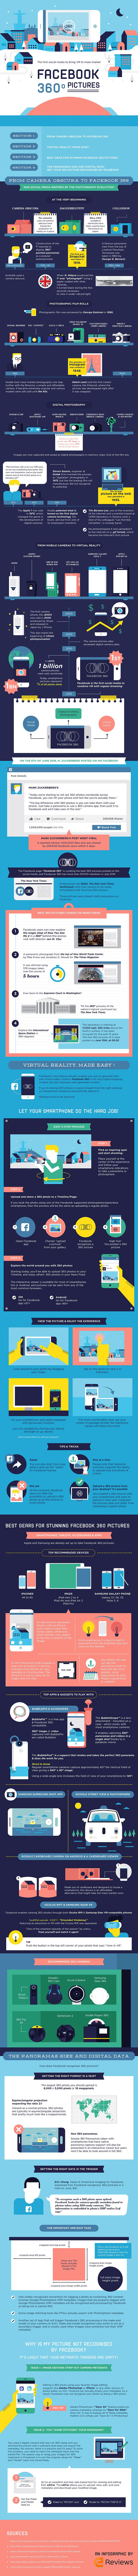 How to Use Facebook 360 in One Epic Infographic